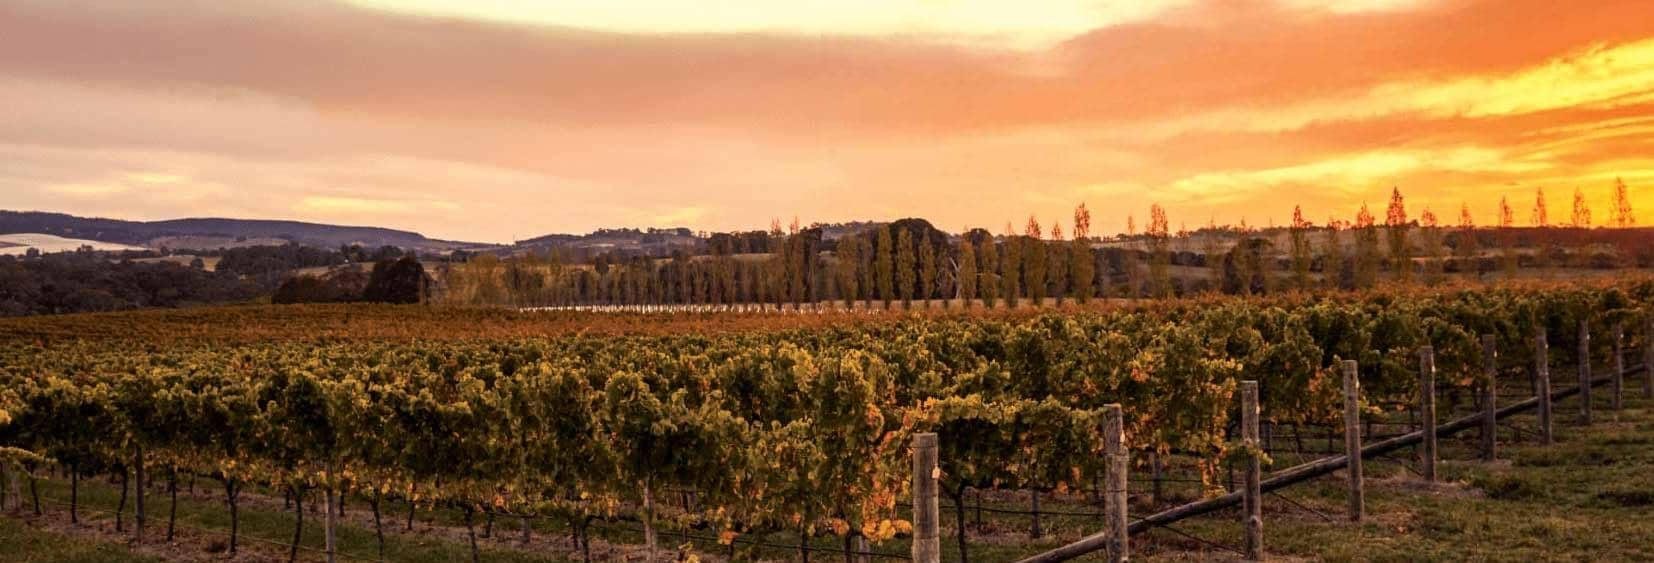 DISCOVERING AUSSIE WINES